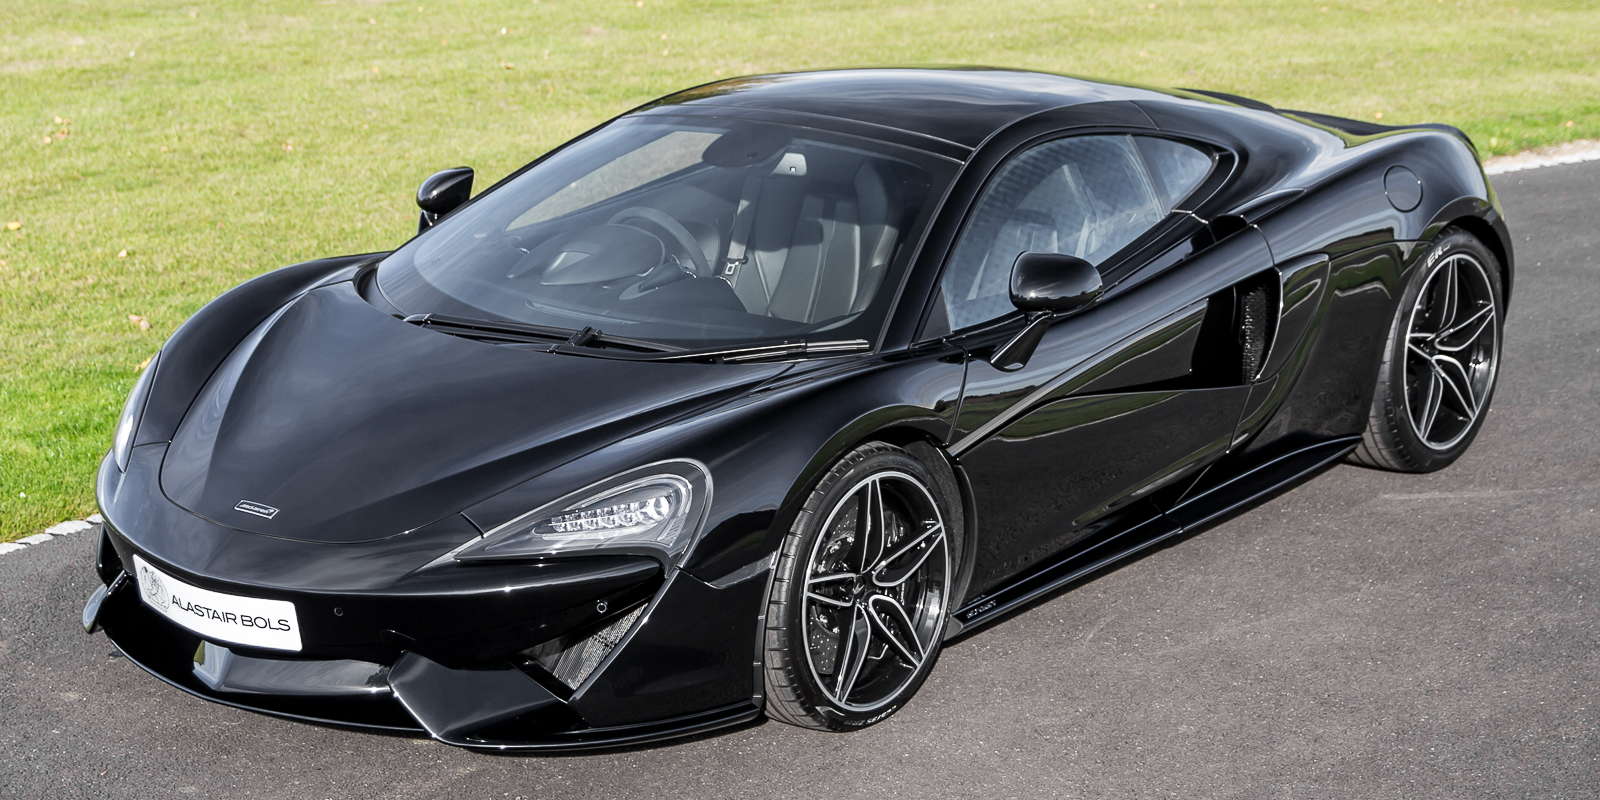 Mclaren 570gt Onyx Black Collection Alastair Bols